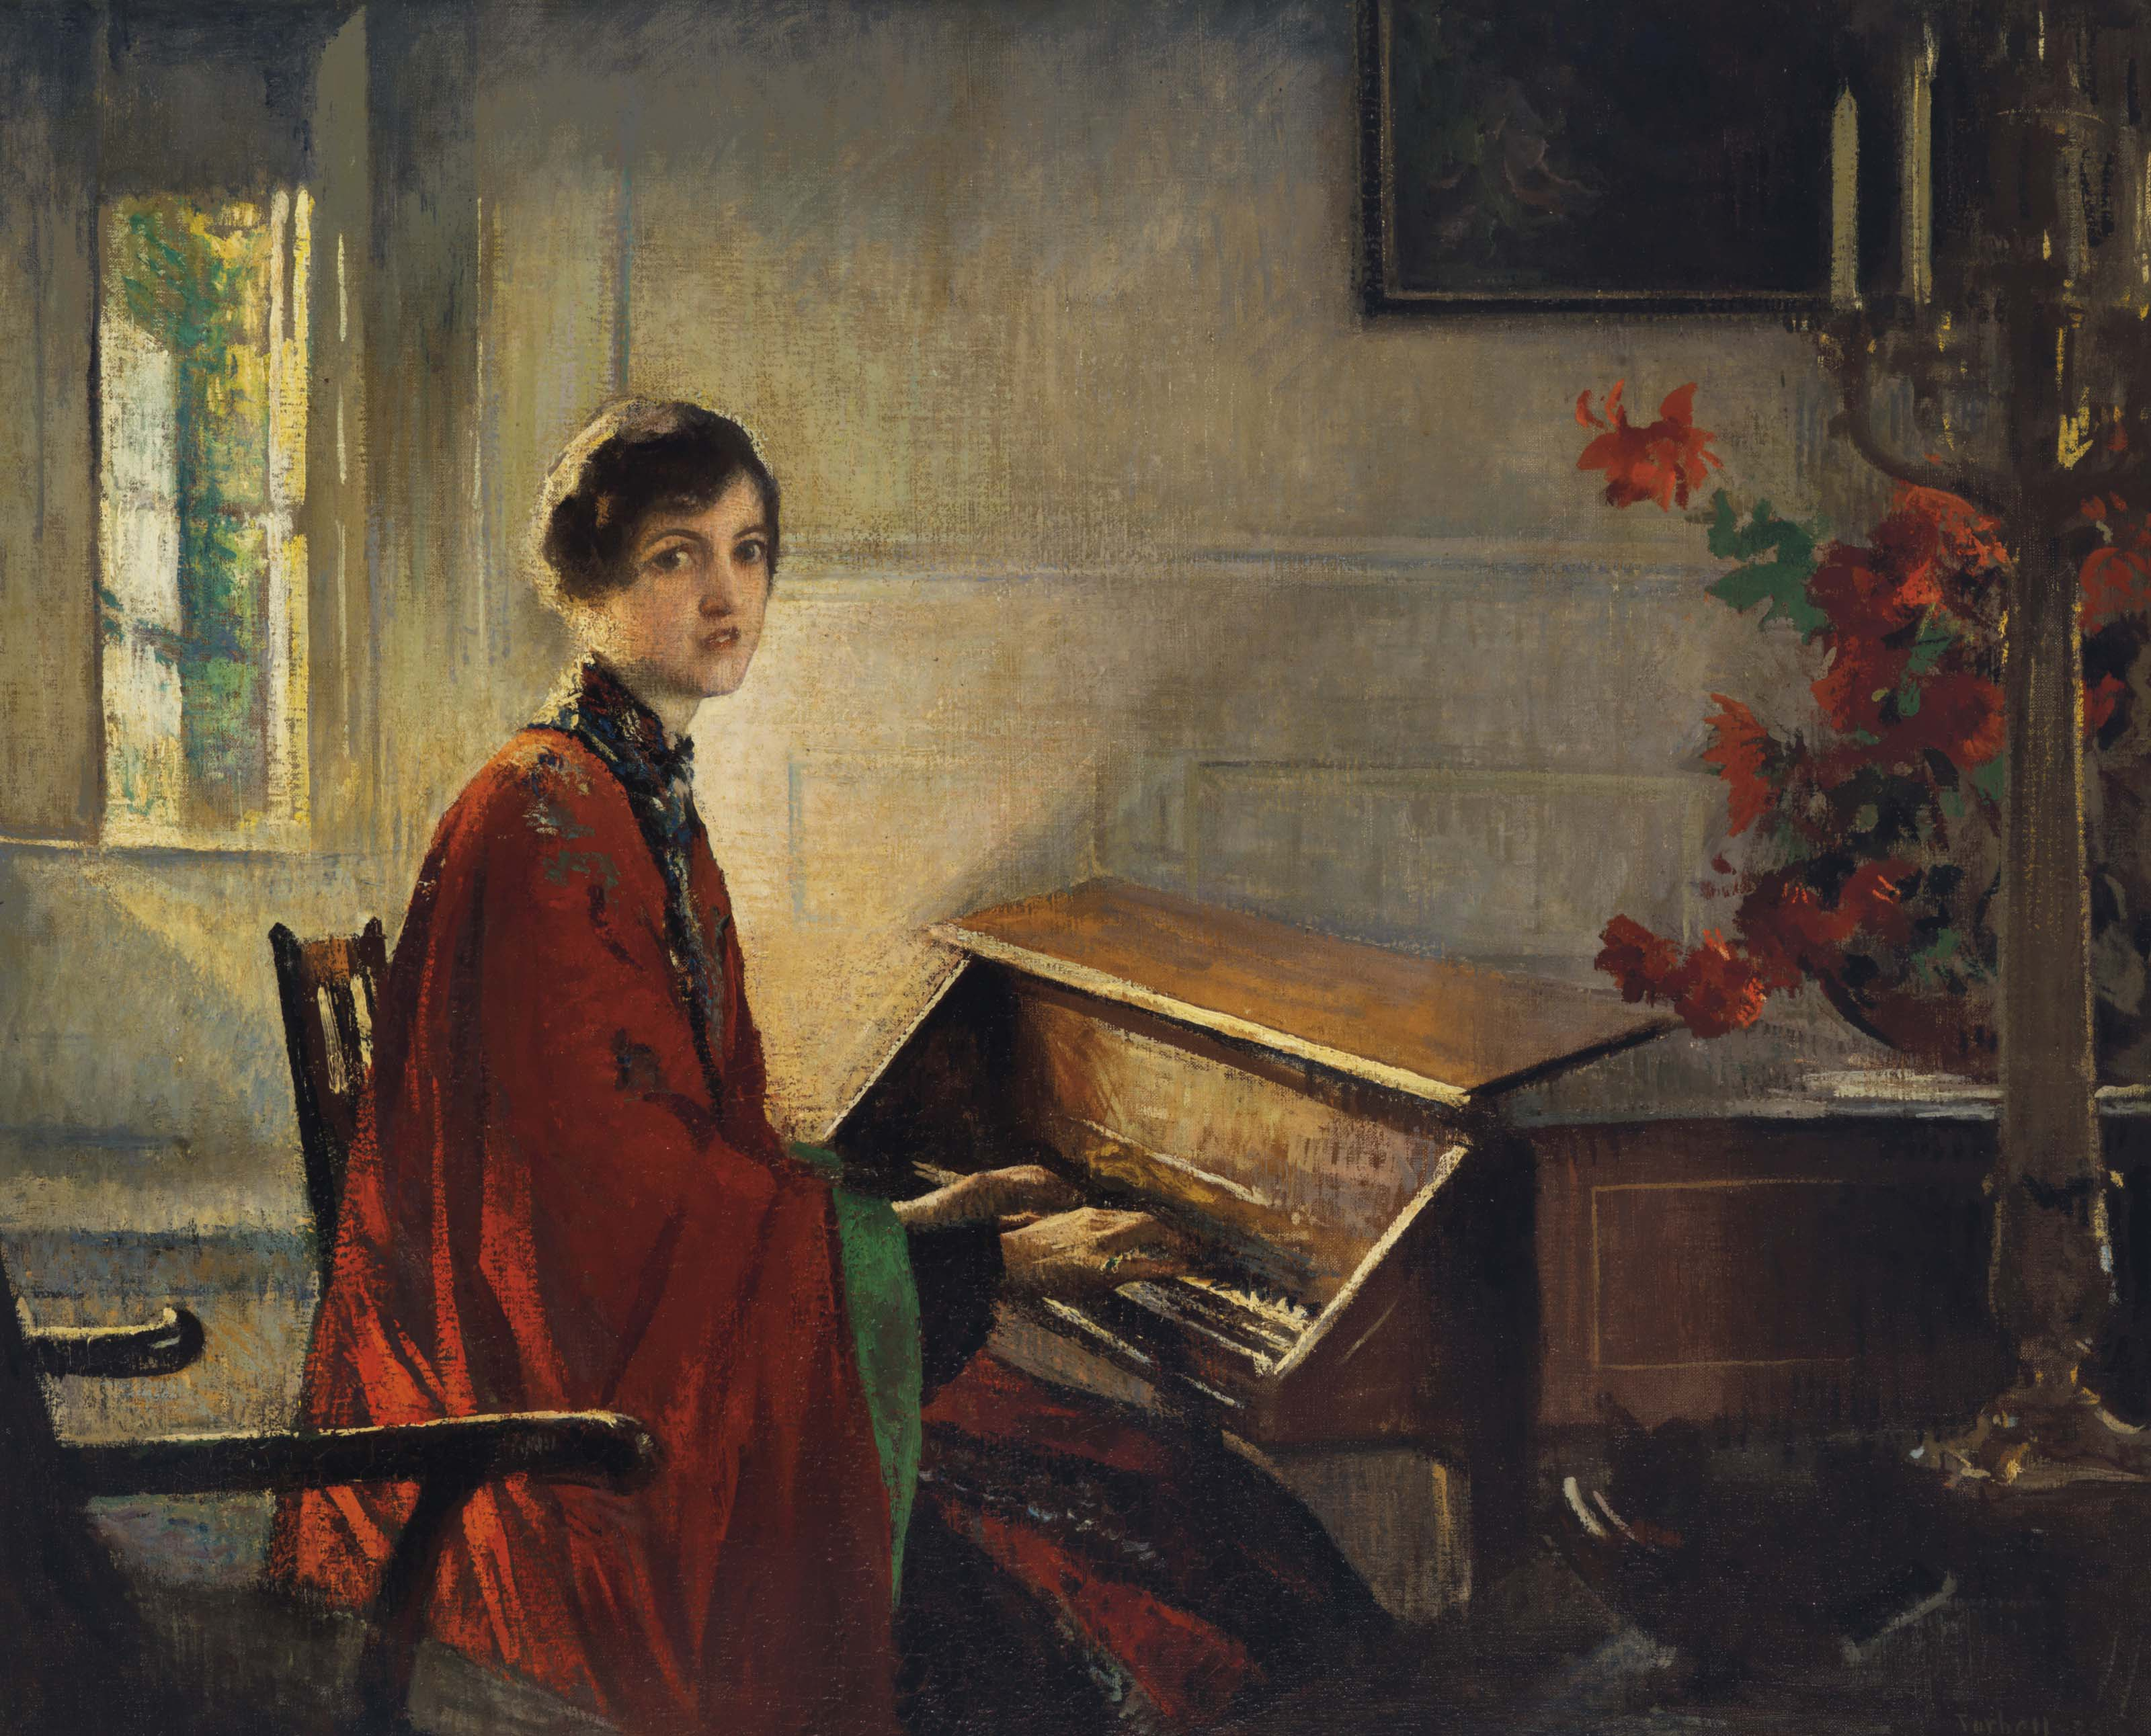 Mary at the Harpsichord